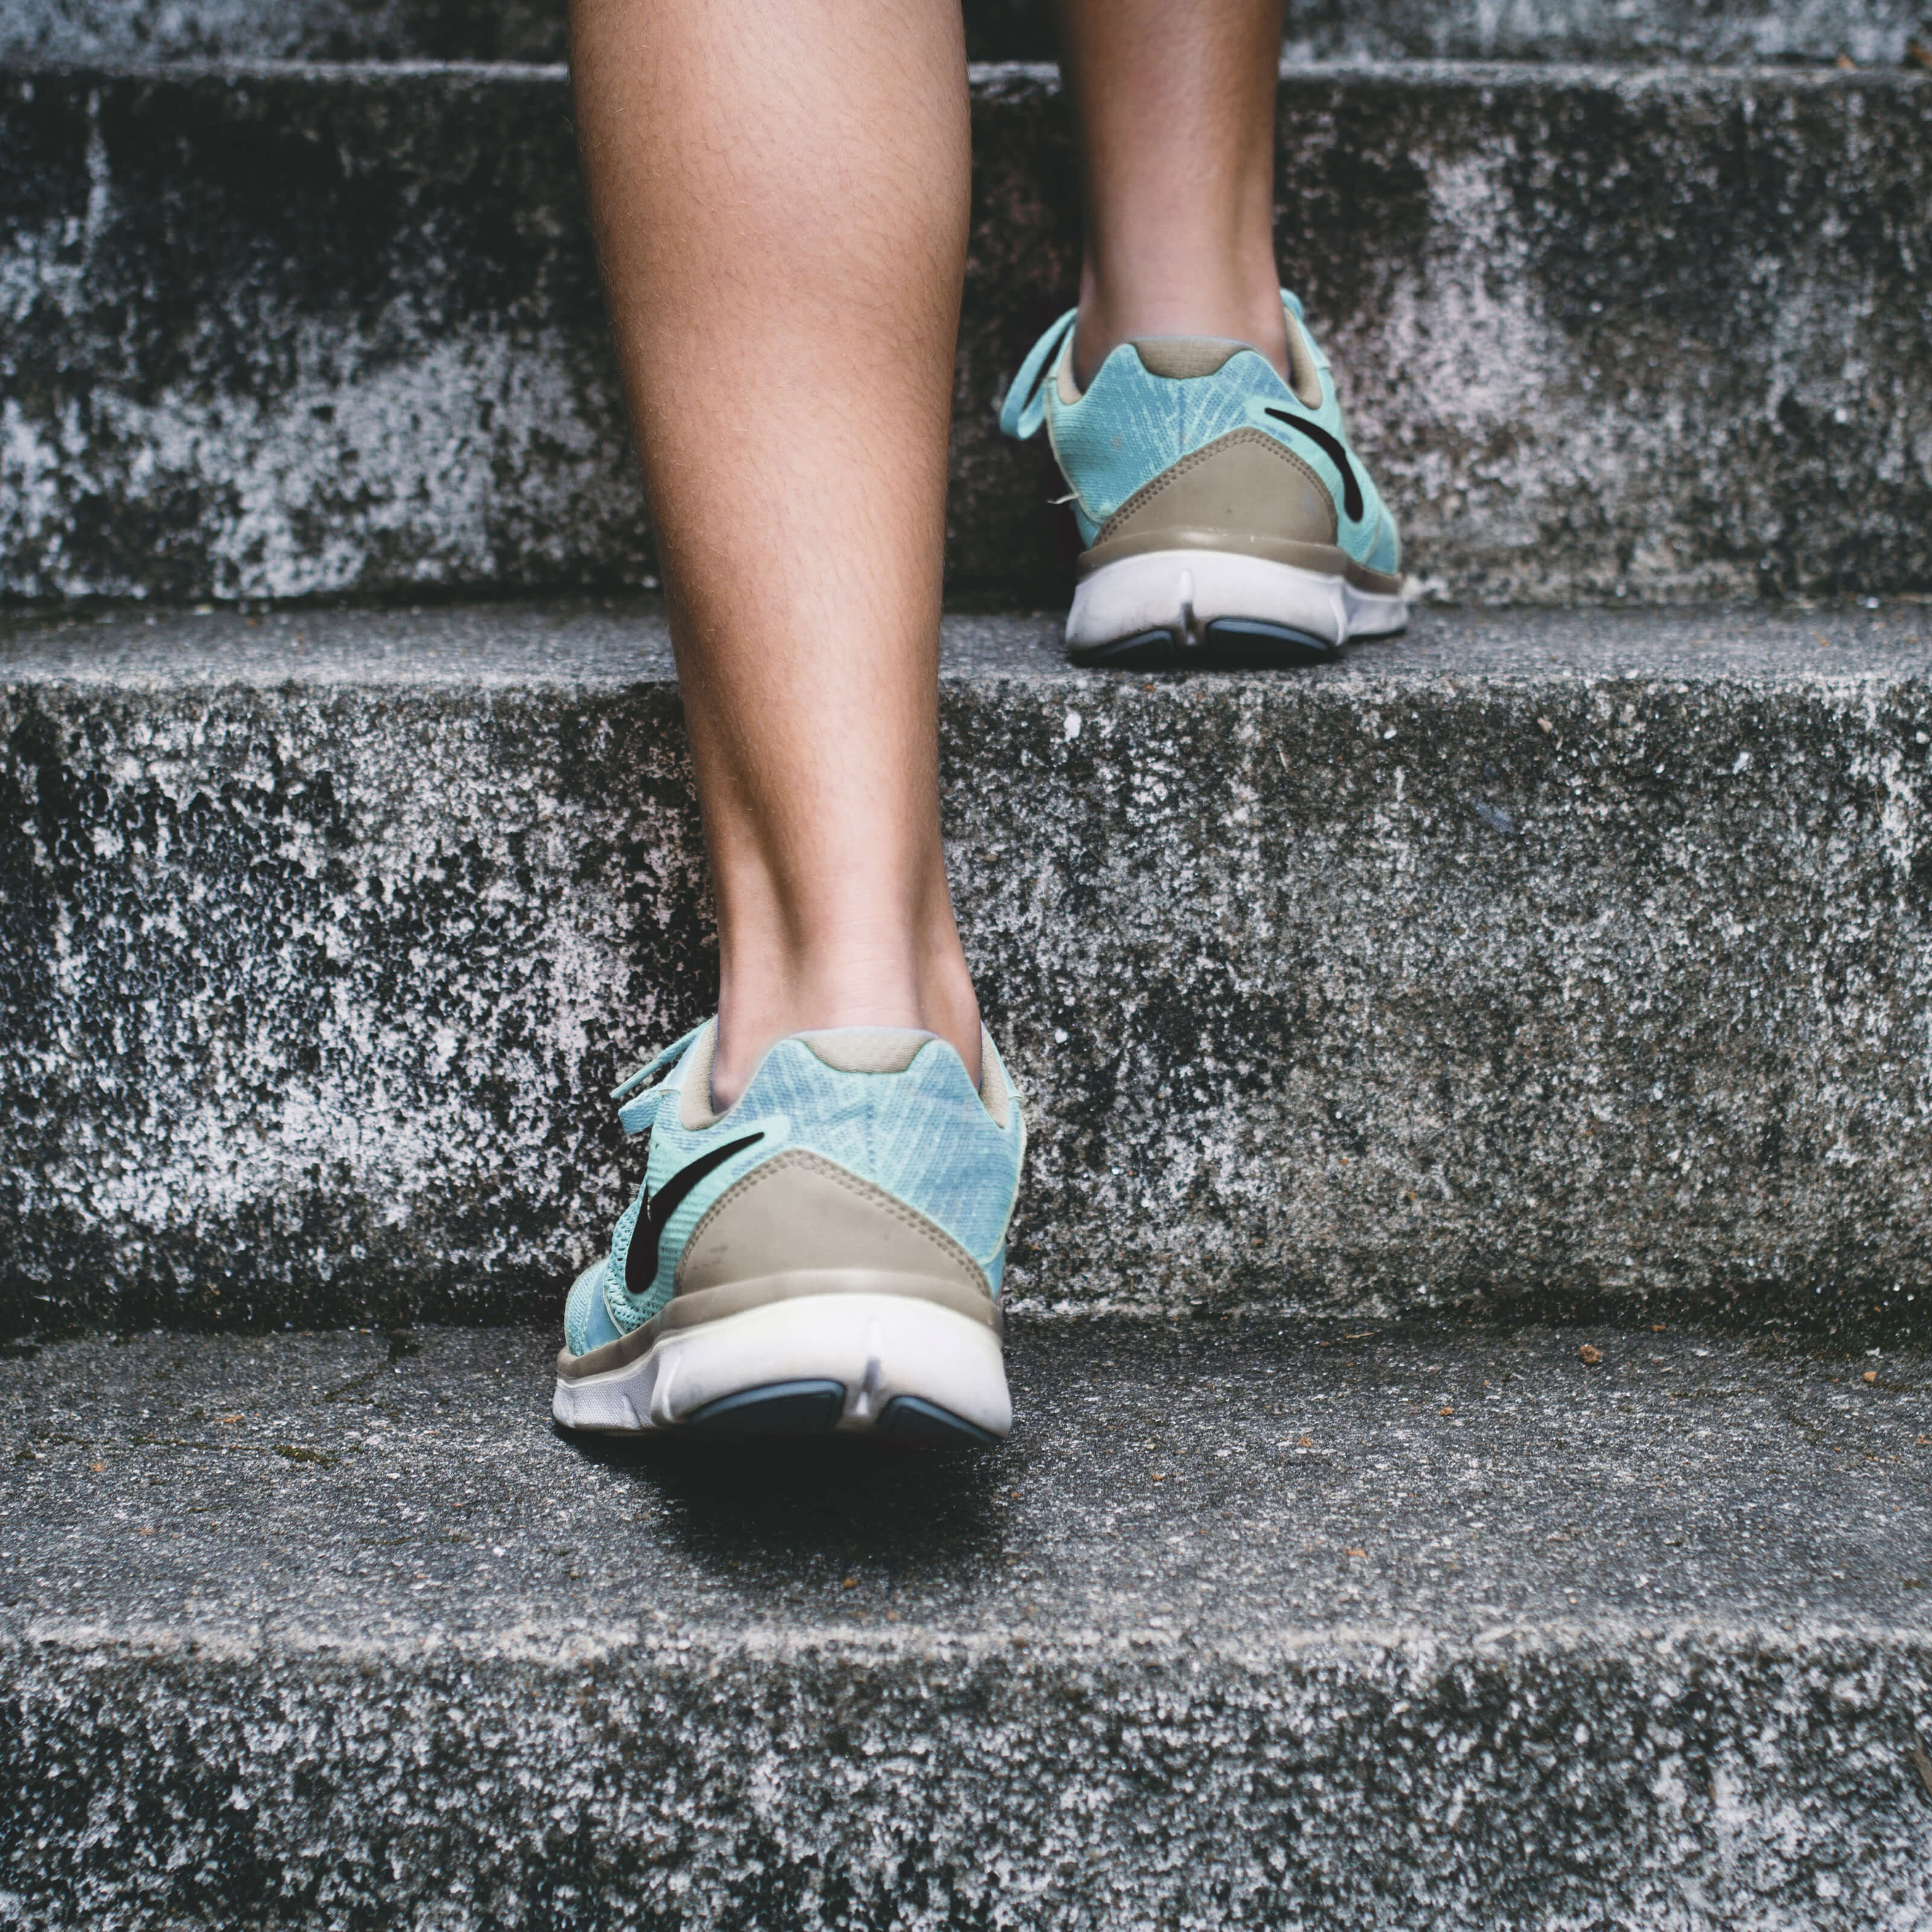 legs jogging up stairs, running shoes